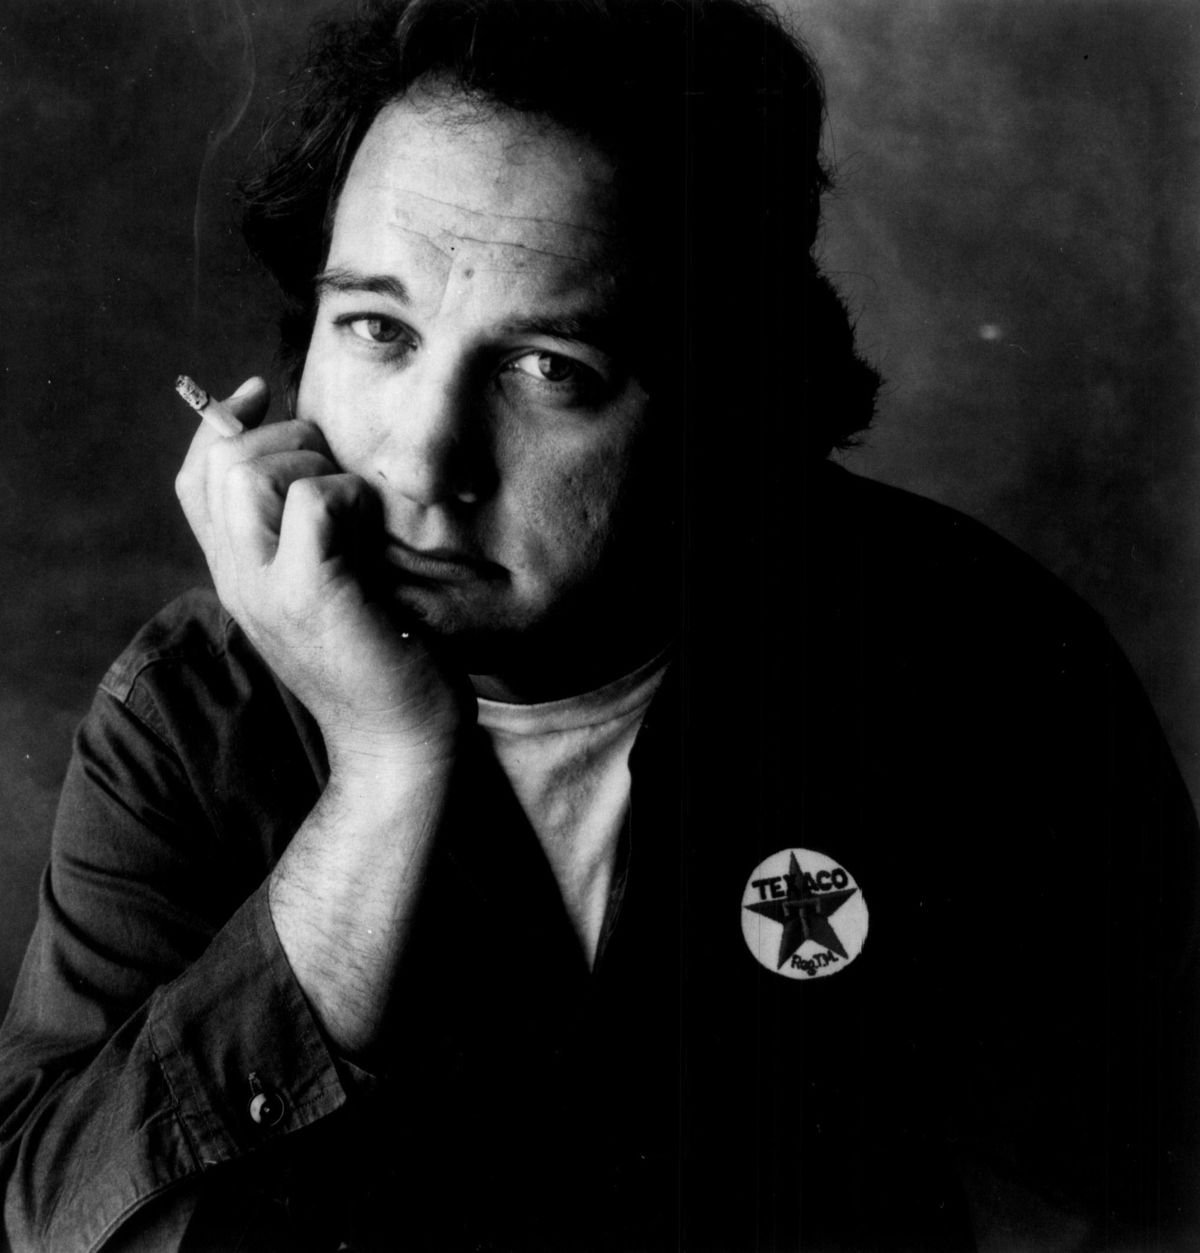 Marc Hauser photographed many celebrities, including Chicago's own Jim Belushi. | Marc Hauser photo